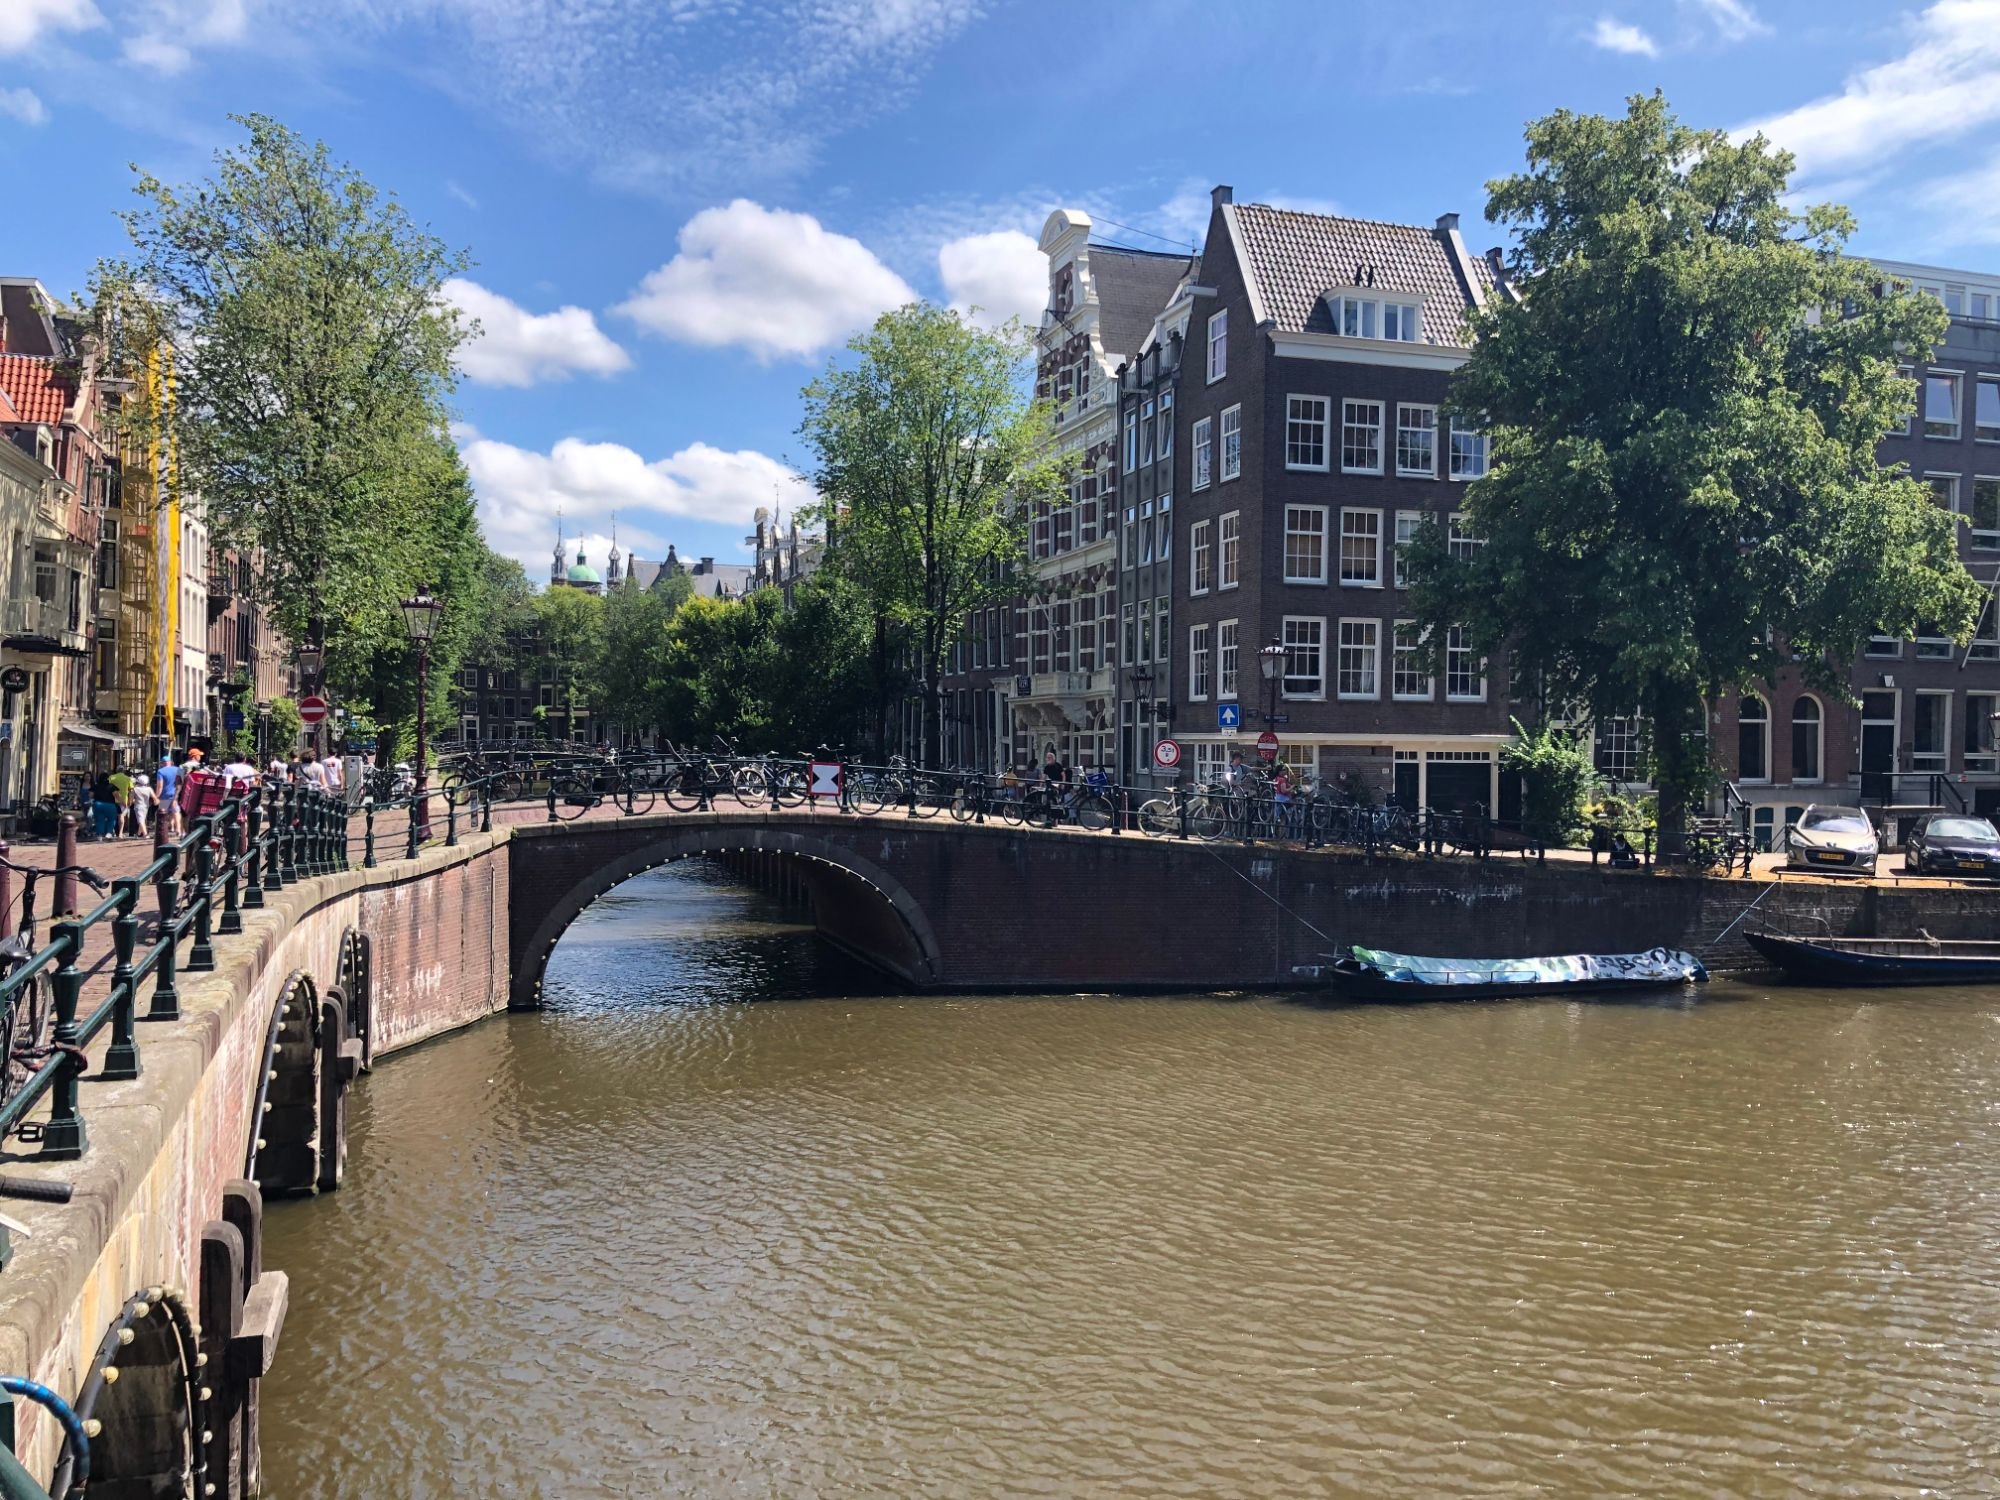 Free stock photo  Amsterdam canal